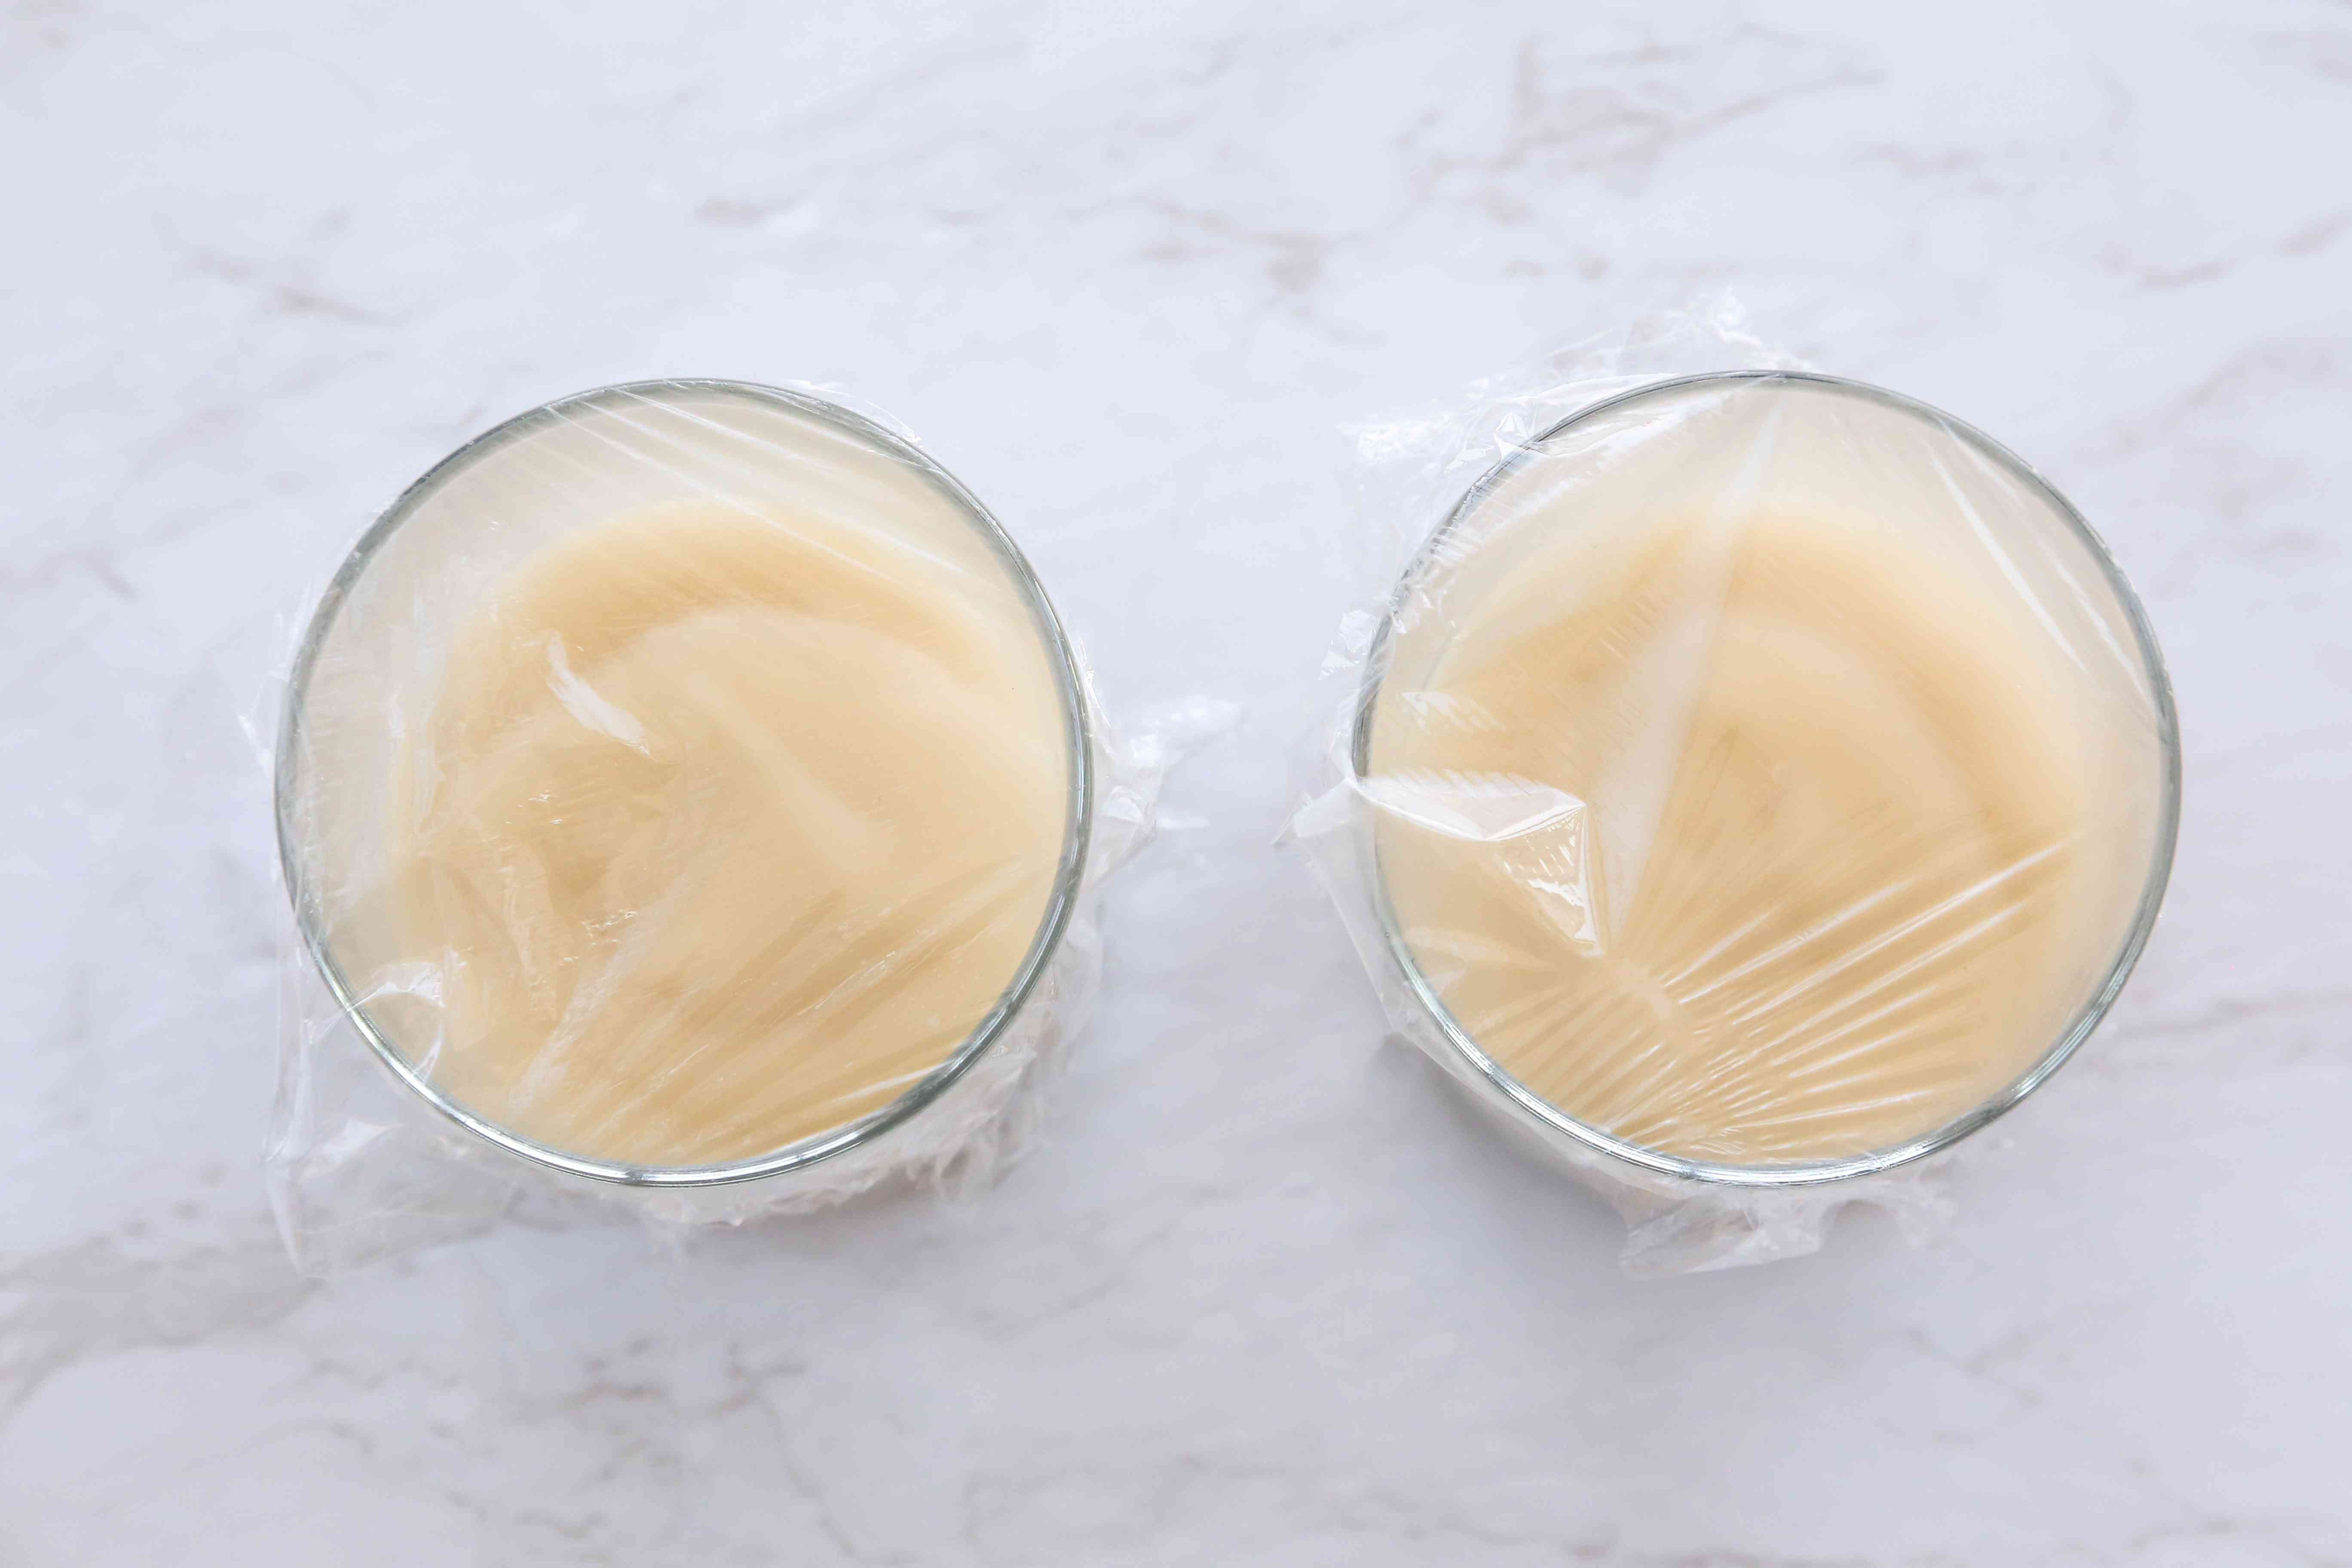 cover the cups with pudding with plastic wrap